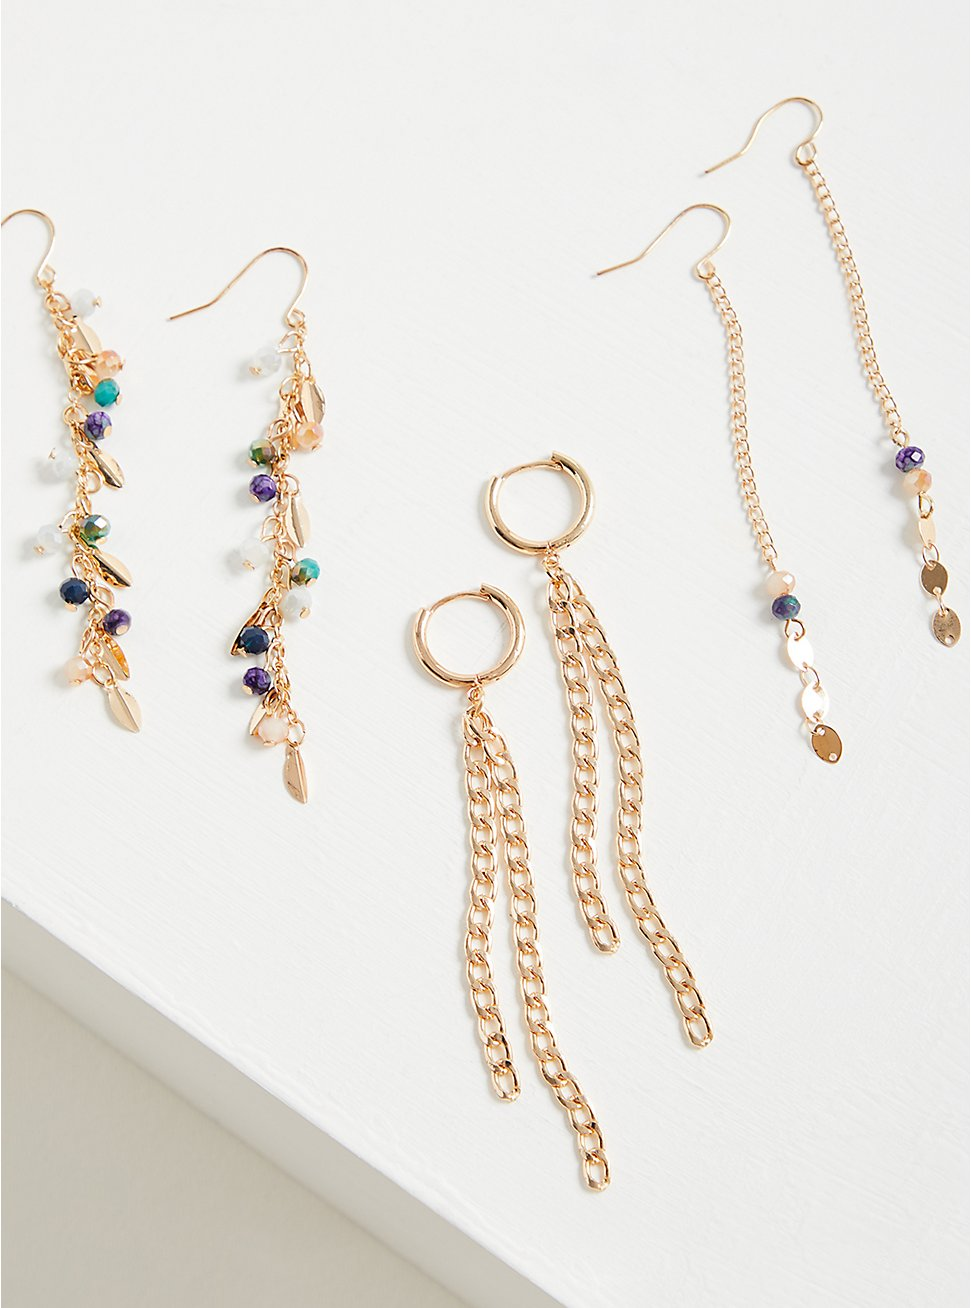 Blue Stone Linear Earring Set of 3 - Gold Tone, , hi-res